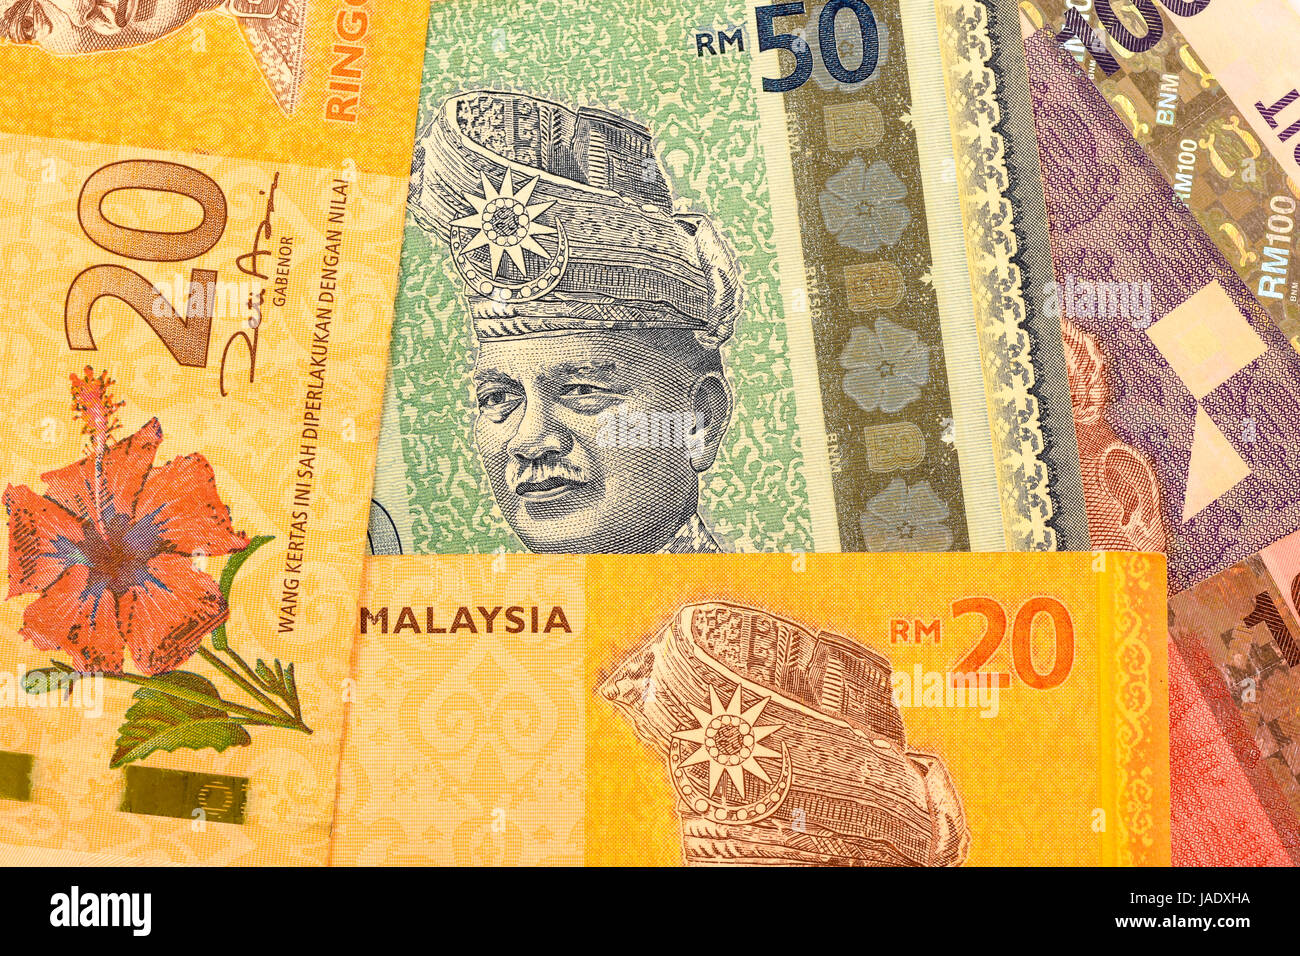 Malaysia Currency Stock Photos & Malaysia Currency Stock Images - Alamy